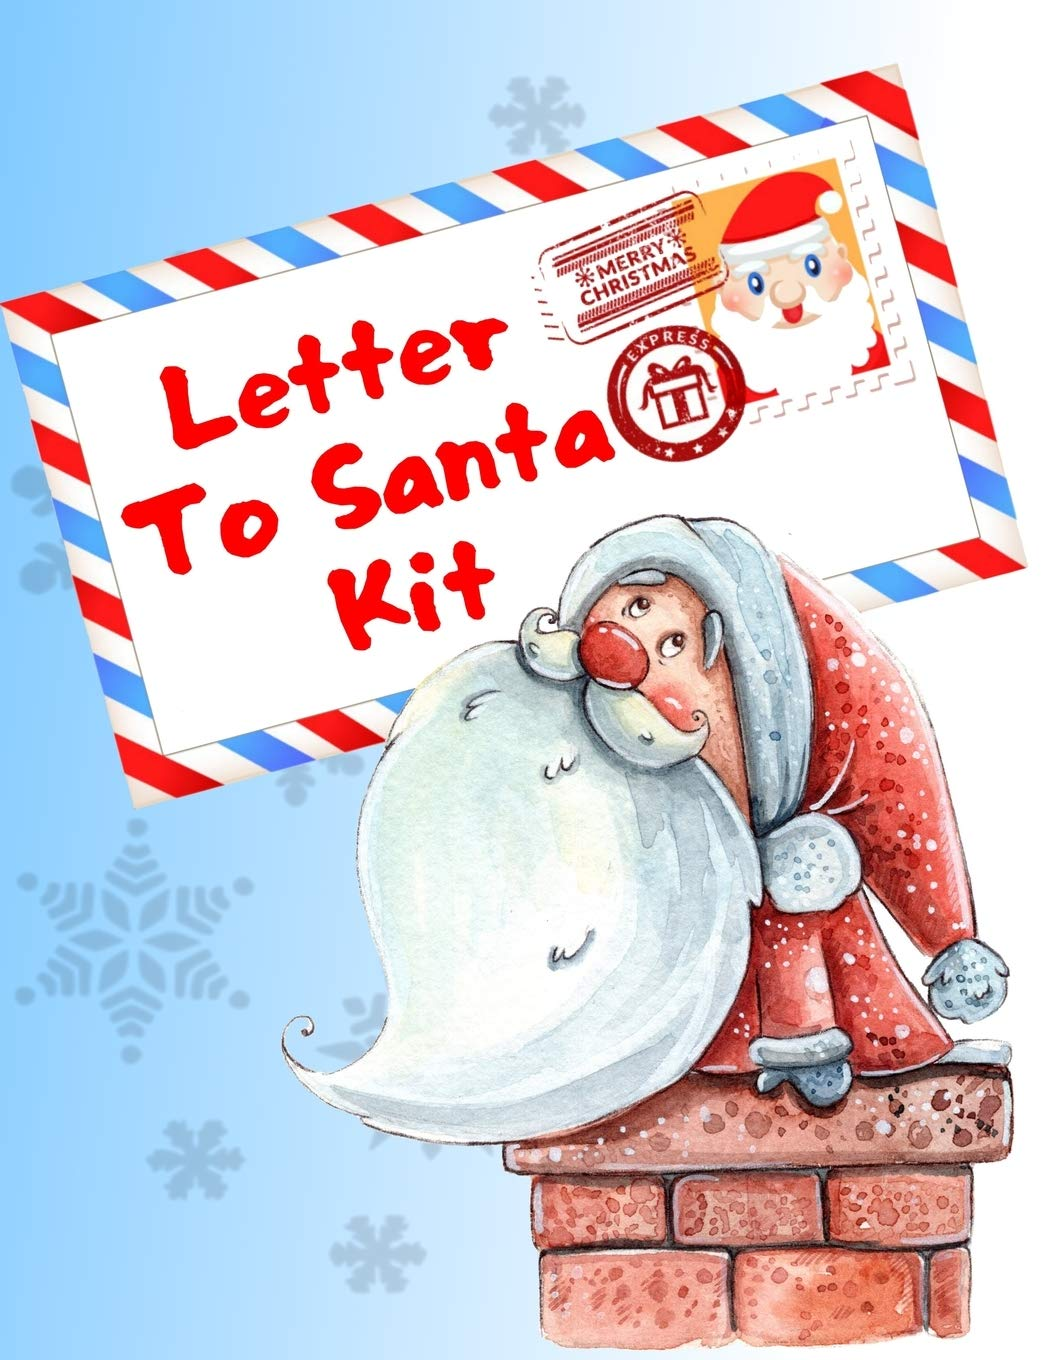 Buy Letter To Santa Kit: Write A Letter To Santa Claus, Coloring And  Sticker Pages Book Online at Low Prices in India   Letter To Santa Kit:  Write A Letter To Santa